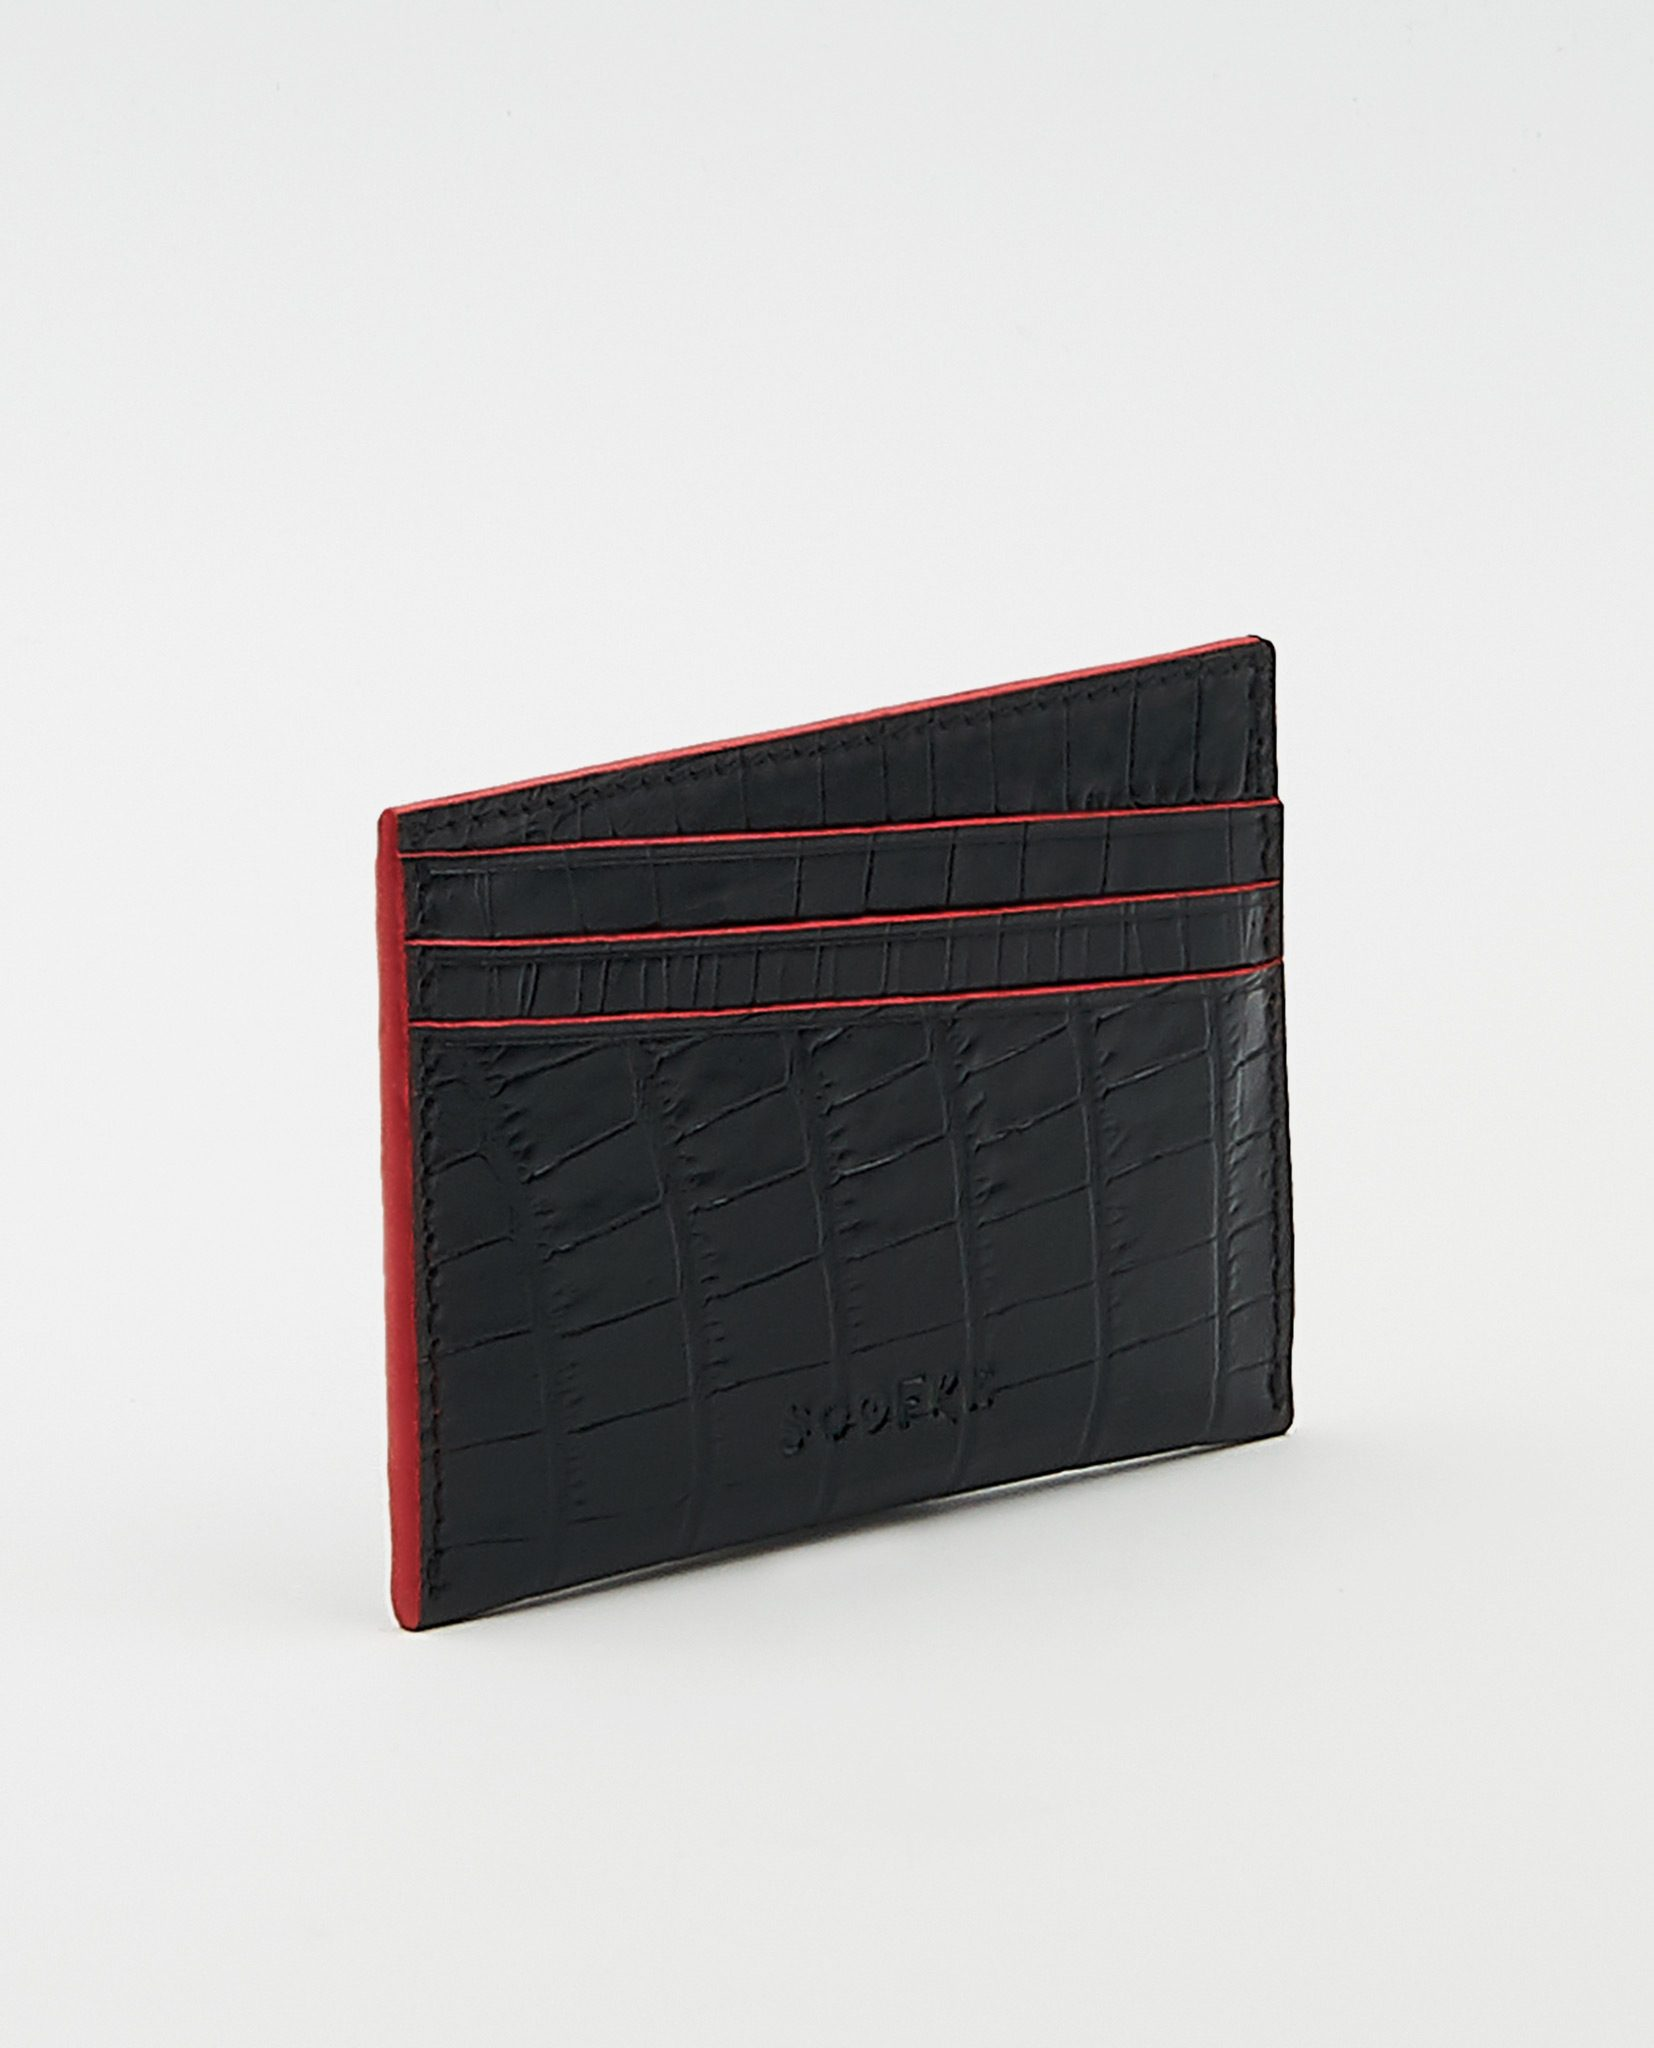 Soofre_Card-Holder_Croco-Black-Red_1